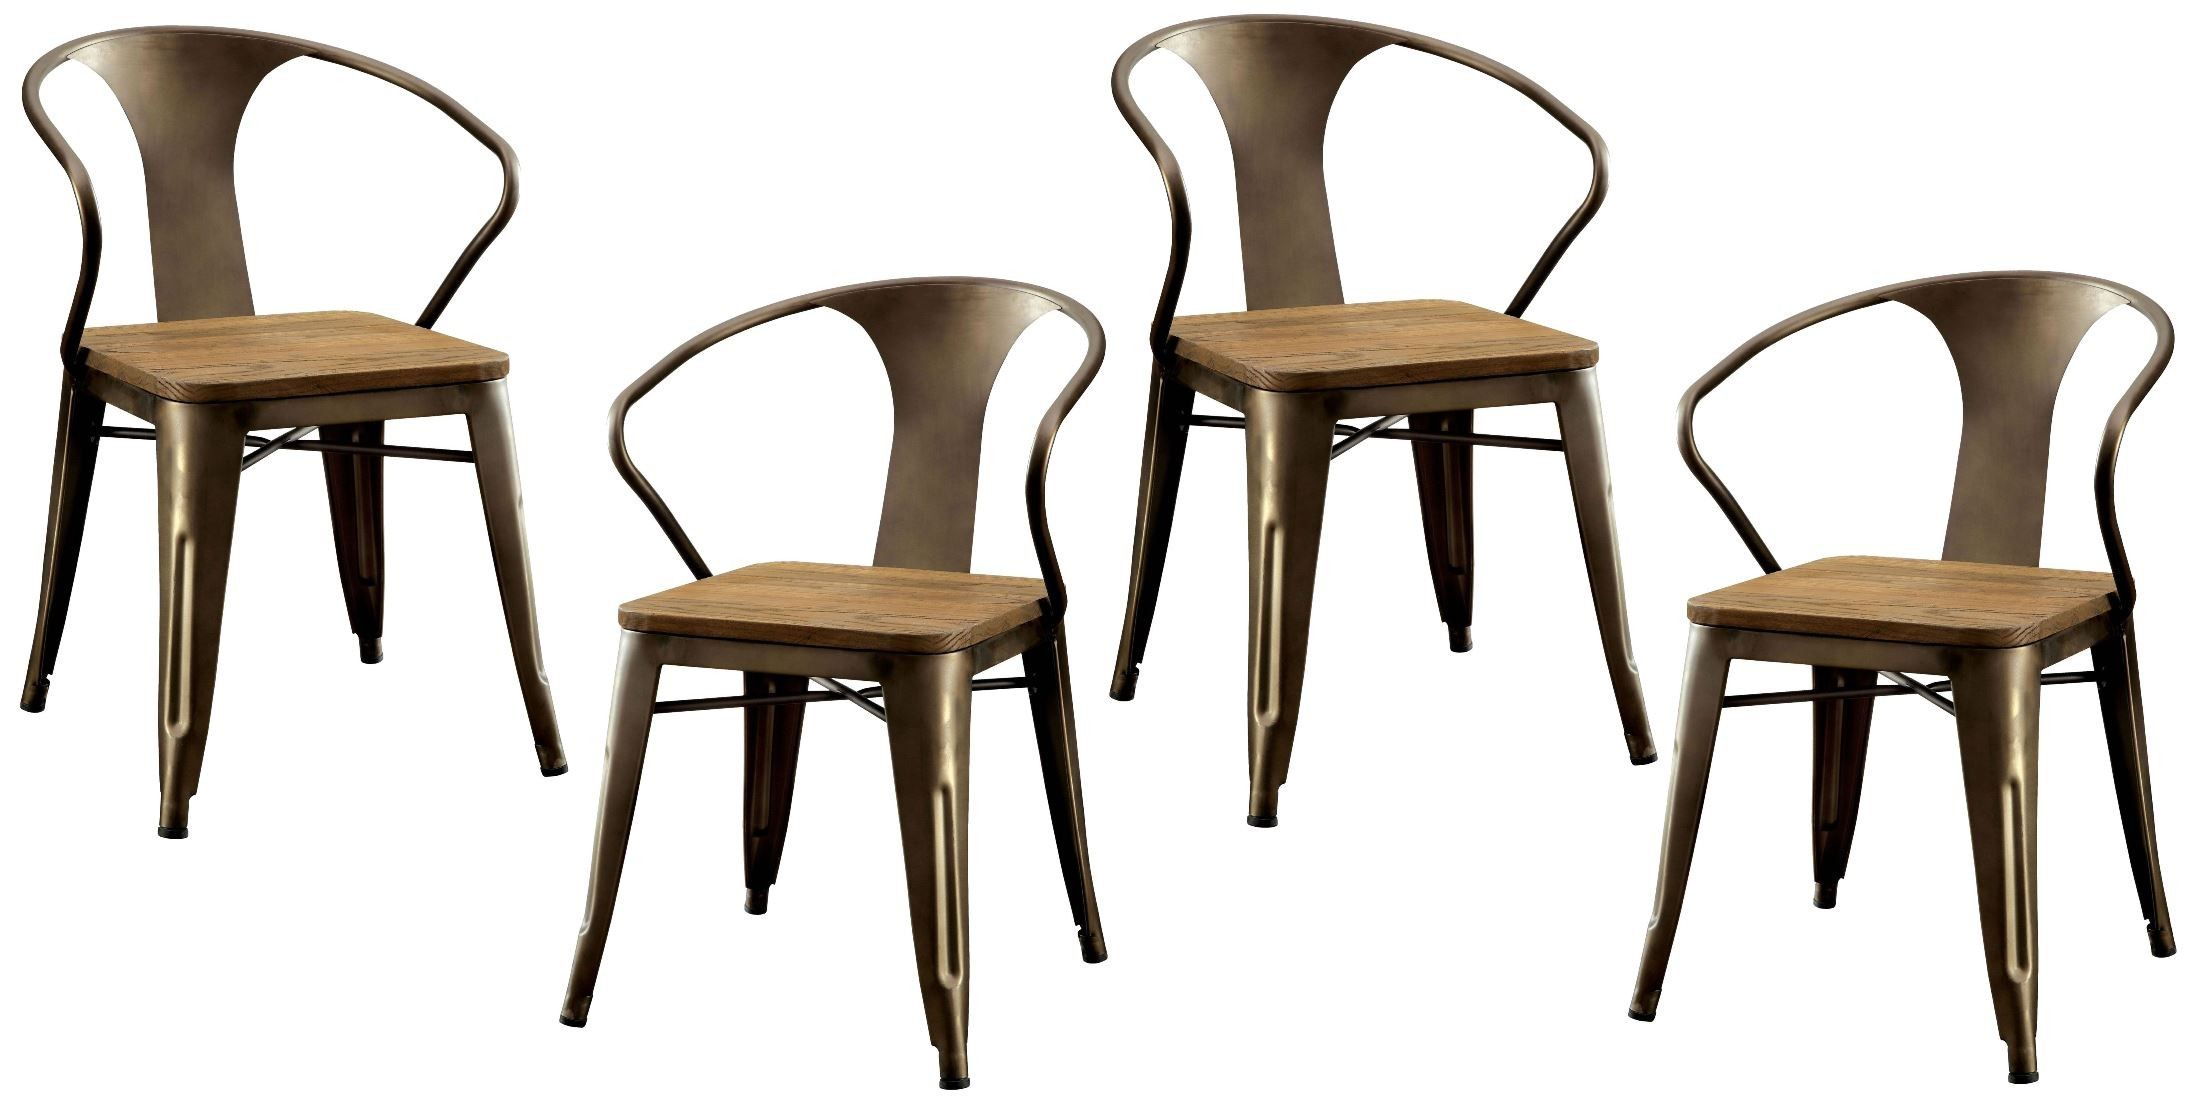 Cooper I Side Chair Set of 4 (With images) Chair set